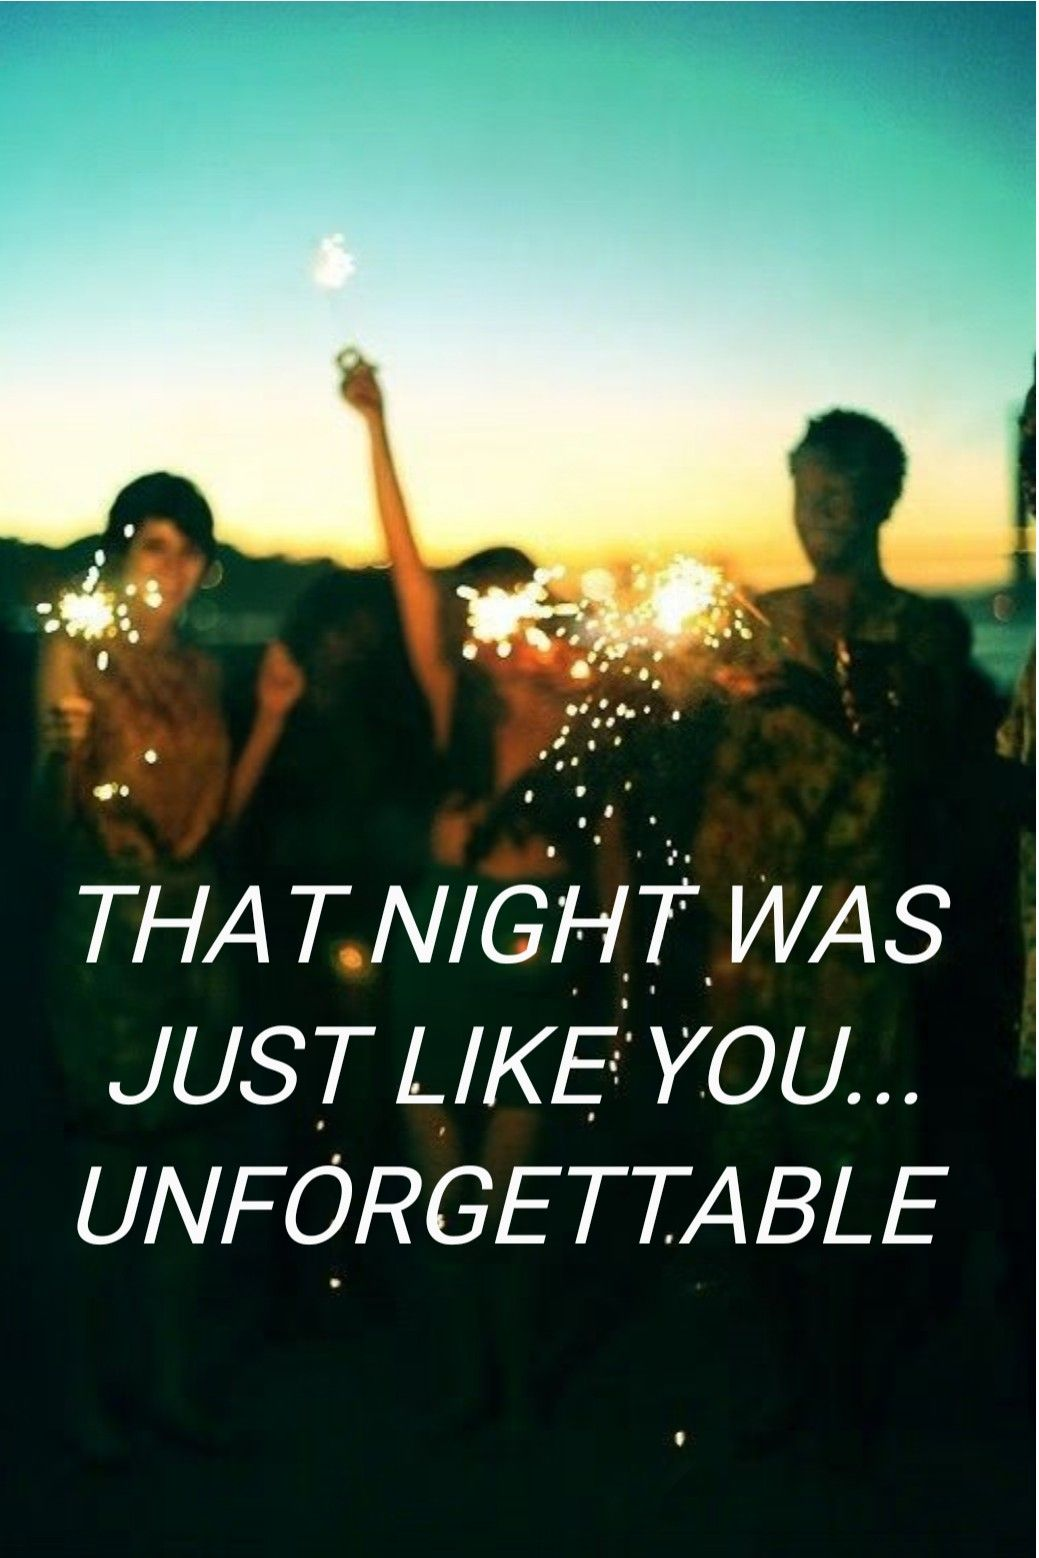 Unforgettable Thomas Rhett 3 Country Song Quotes Country Song Lyrics Thomas Rhett Lyrics